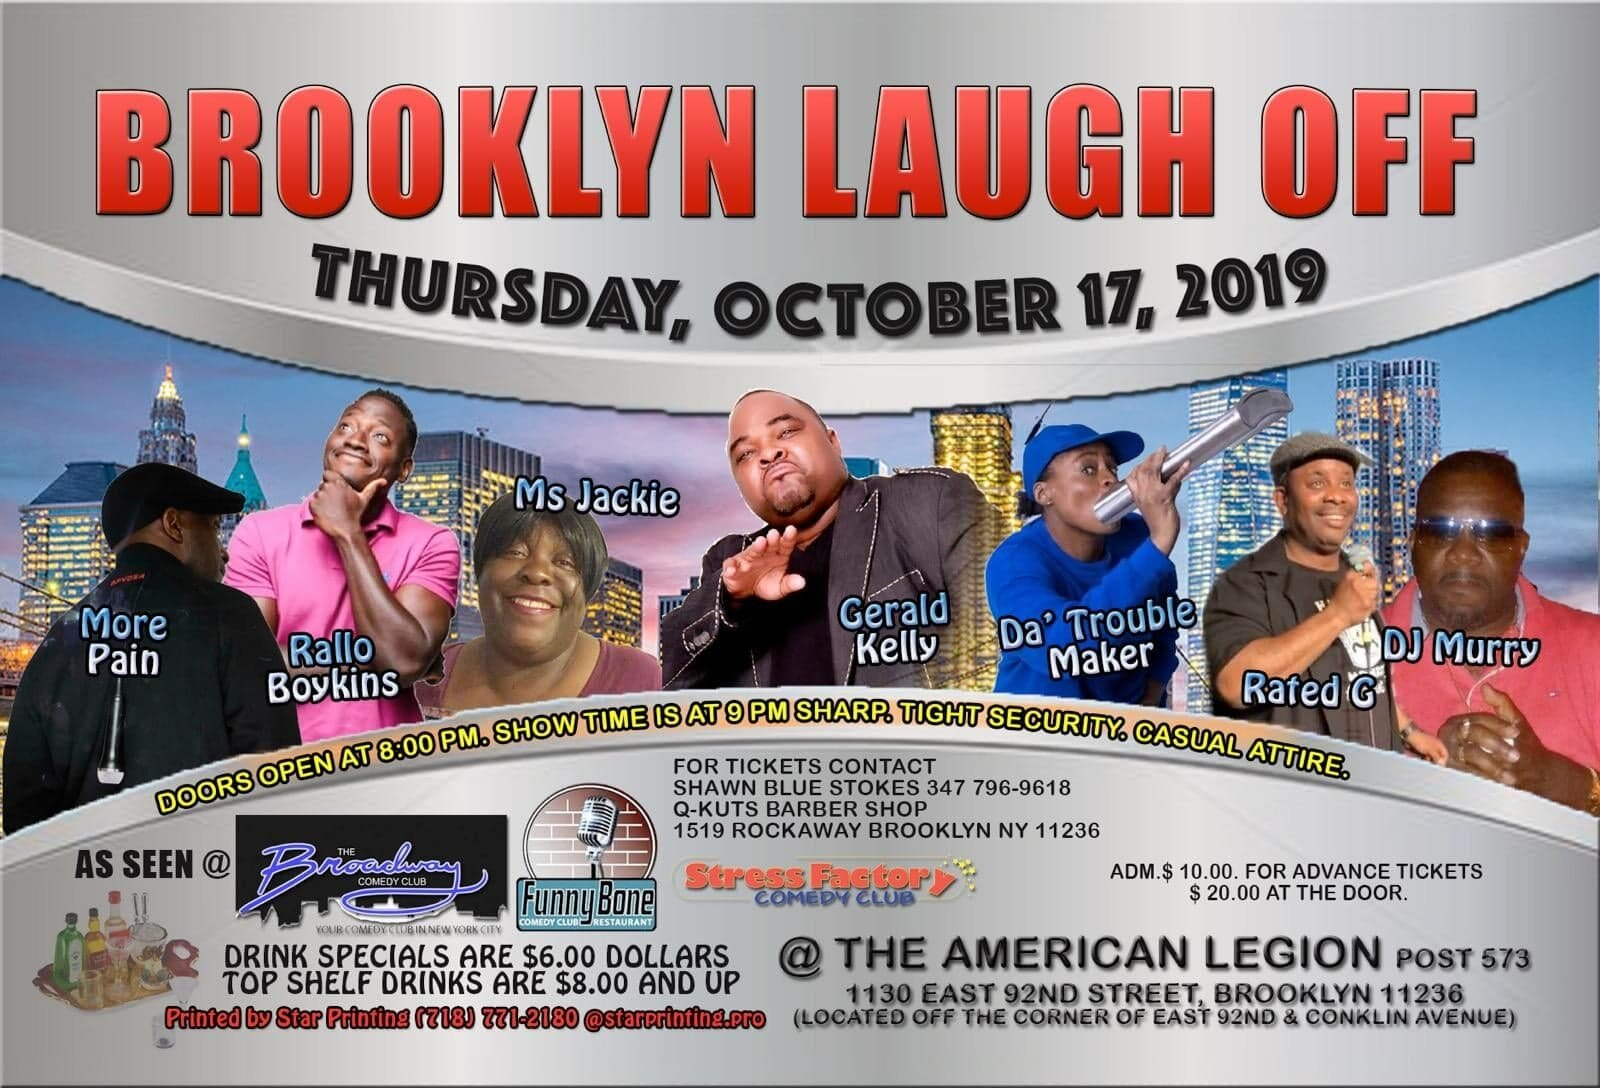 Brooklyn Laugh Off Thursday, Oct 17th 9:oopm-11:oopm The American Legion | 1130 East 92nd St. | Brooklyn, NY 11236